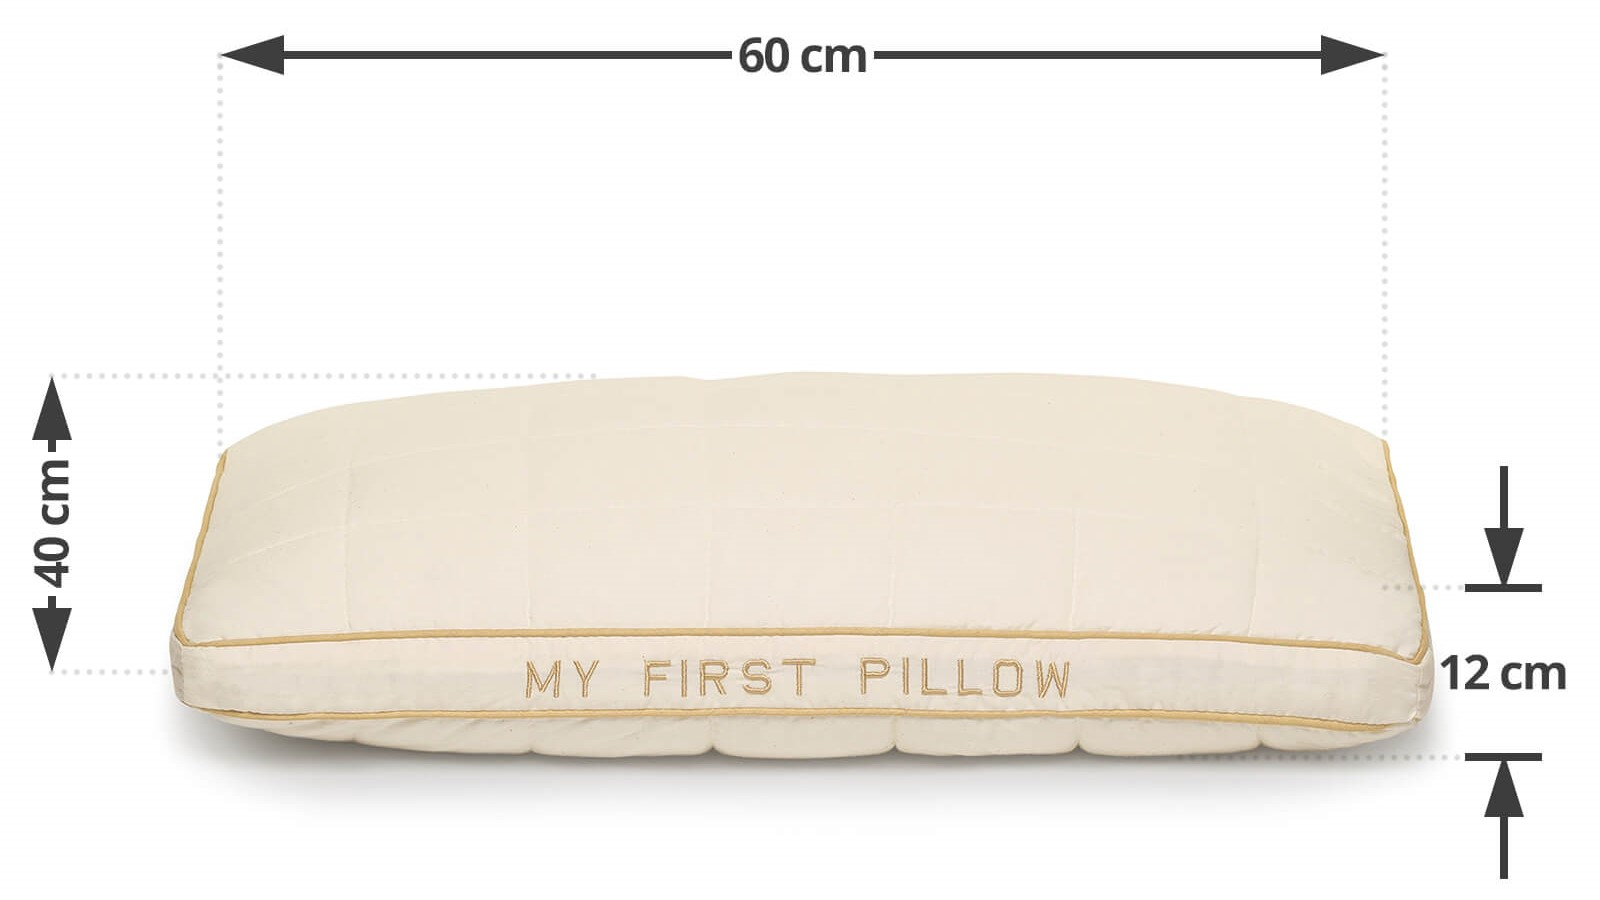 17626_12_pillow_my_first_pillow-web